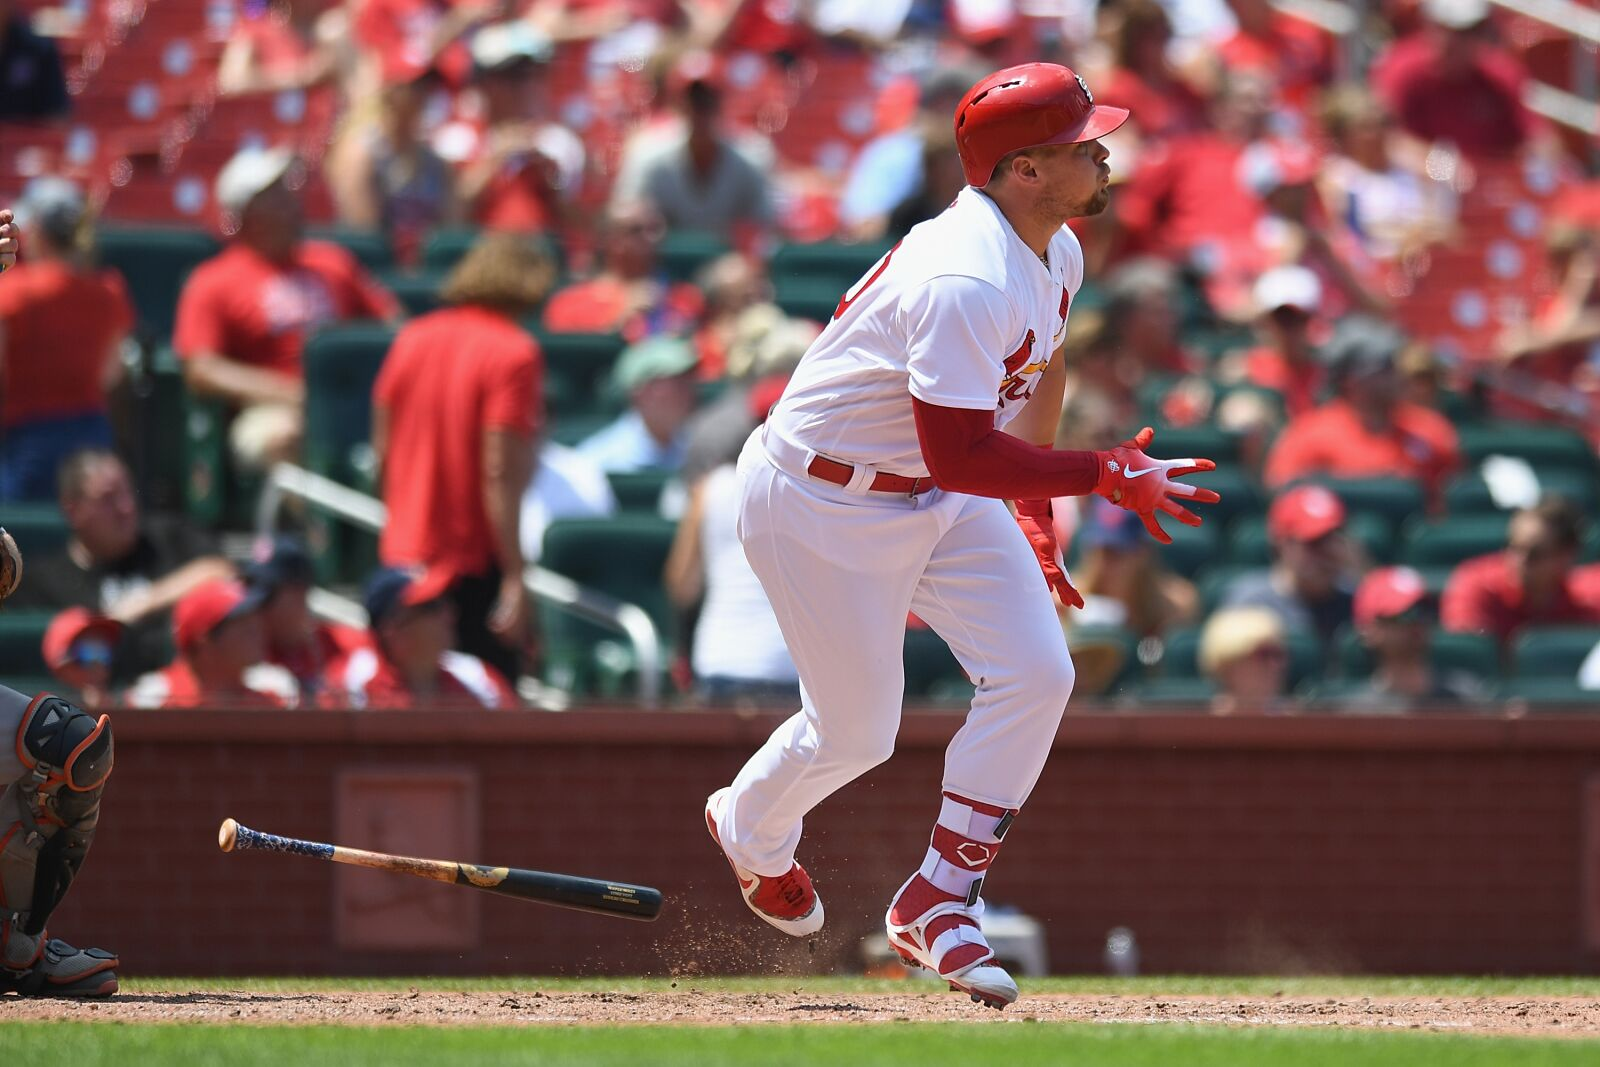 Root against ex-St. Louis Cardinals? It can be tempting